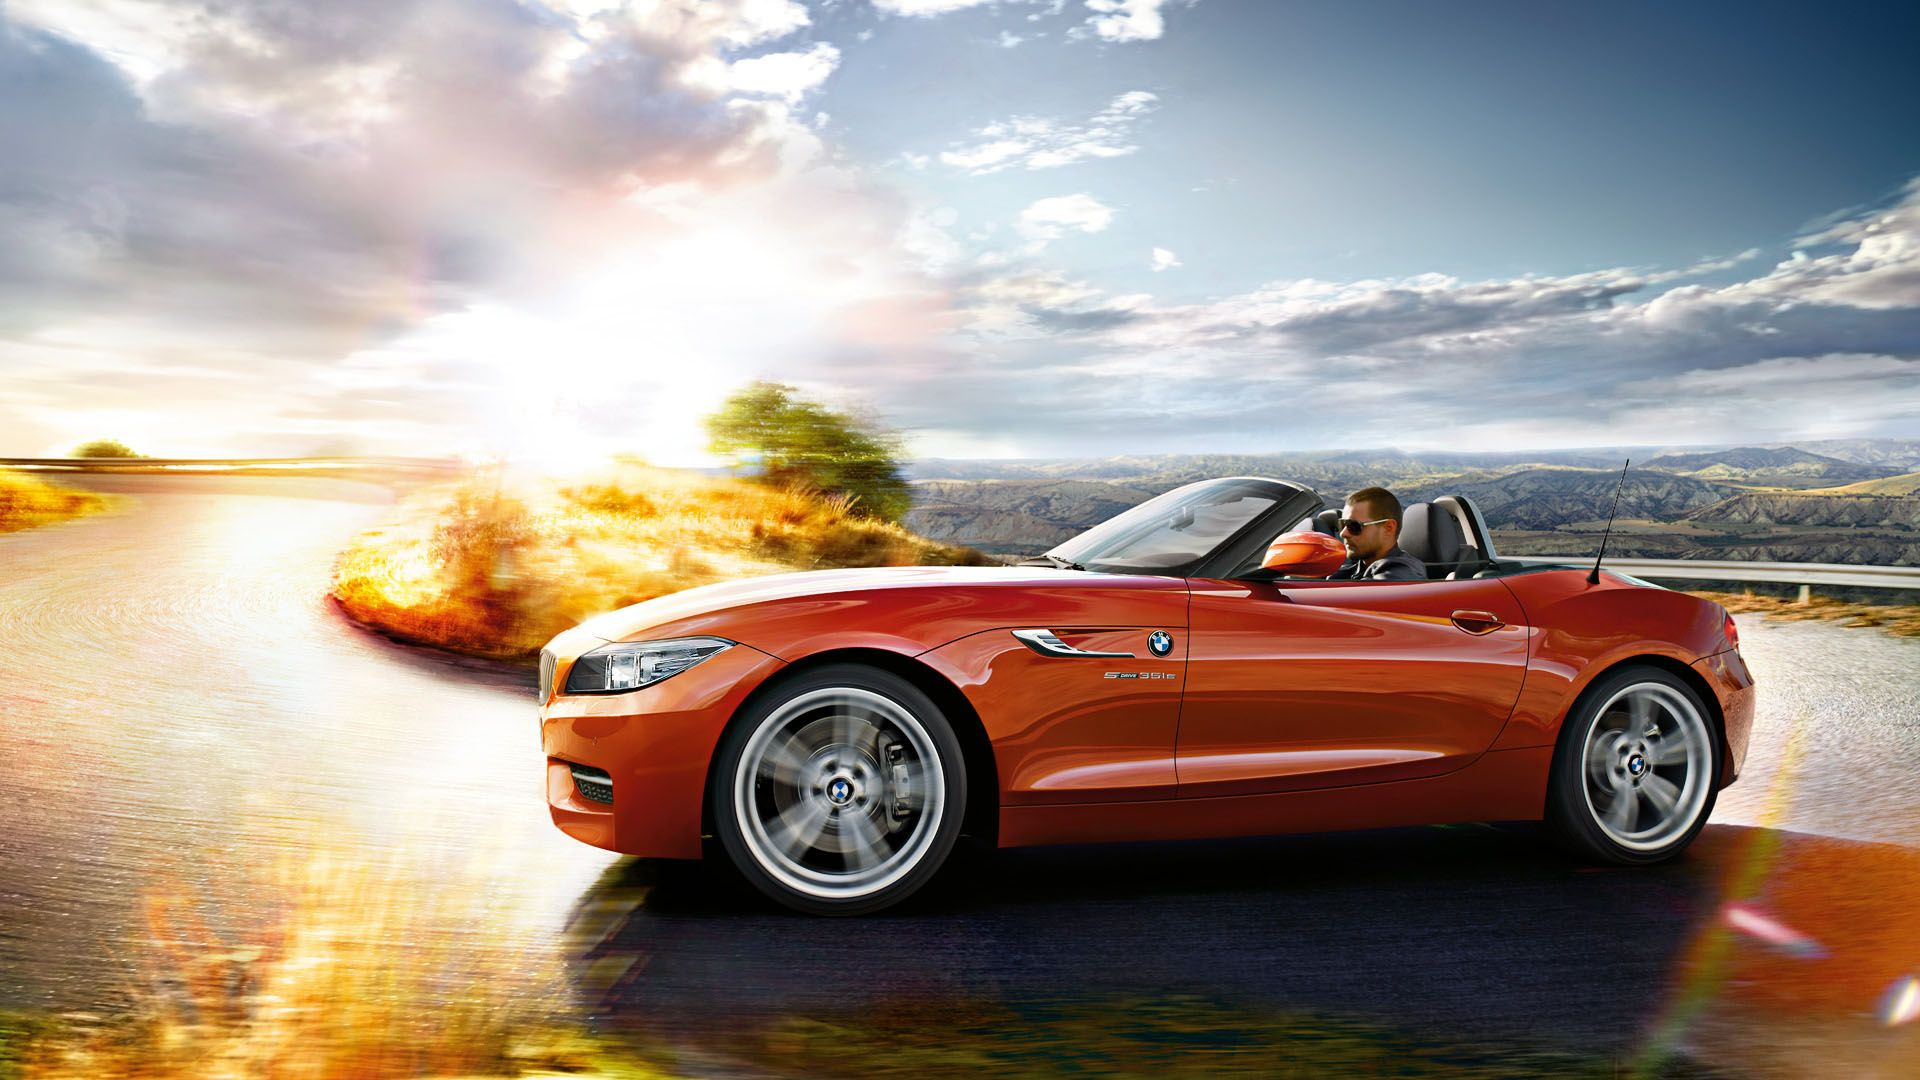 Bmw Z4 Wallpaper Hd Wallpapers Available In Different Resolution